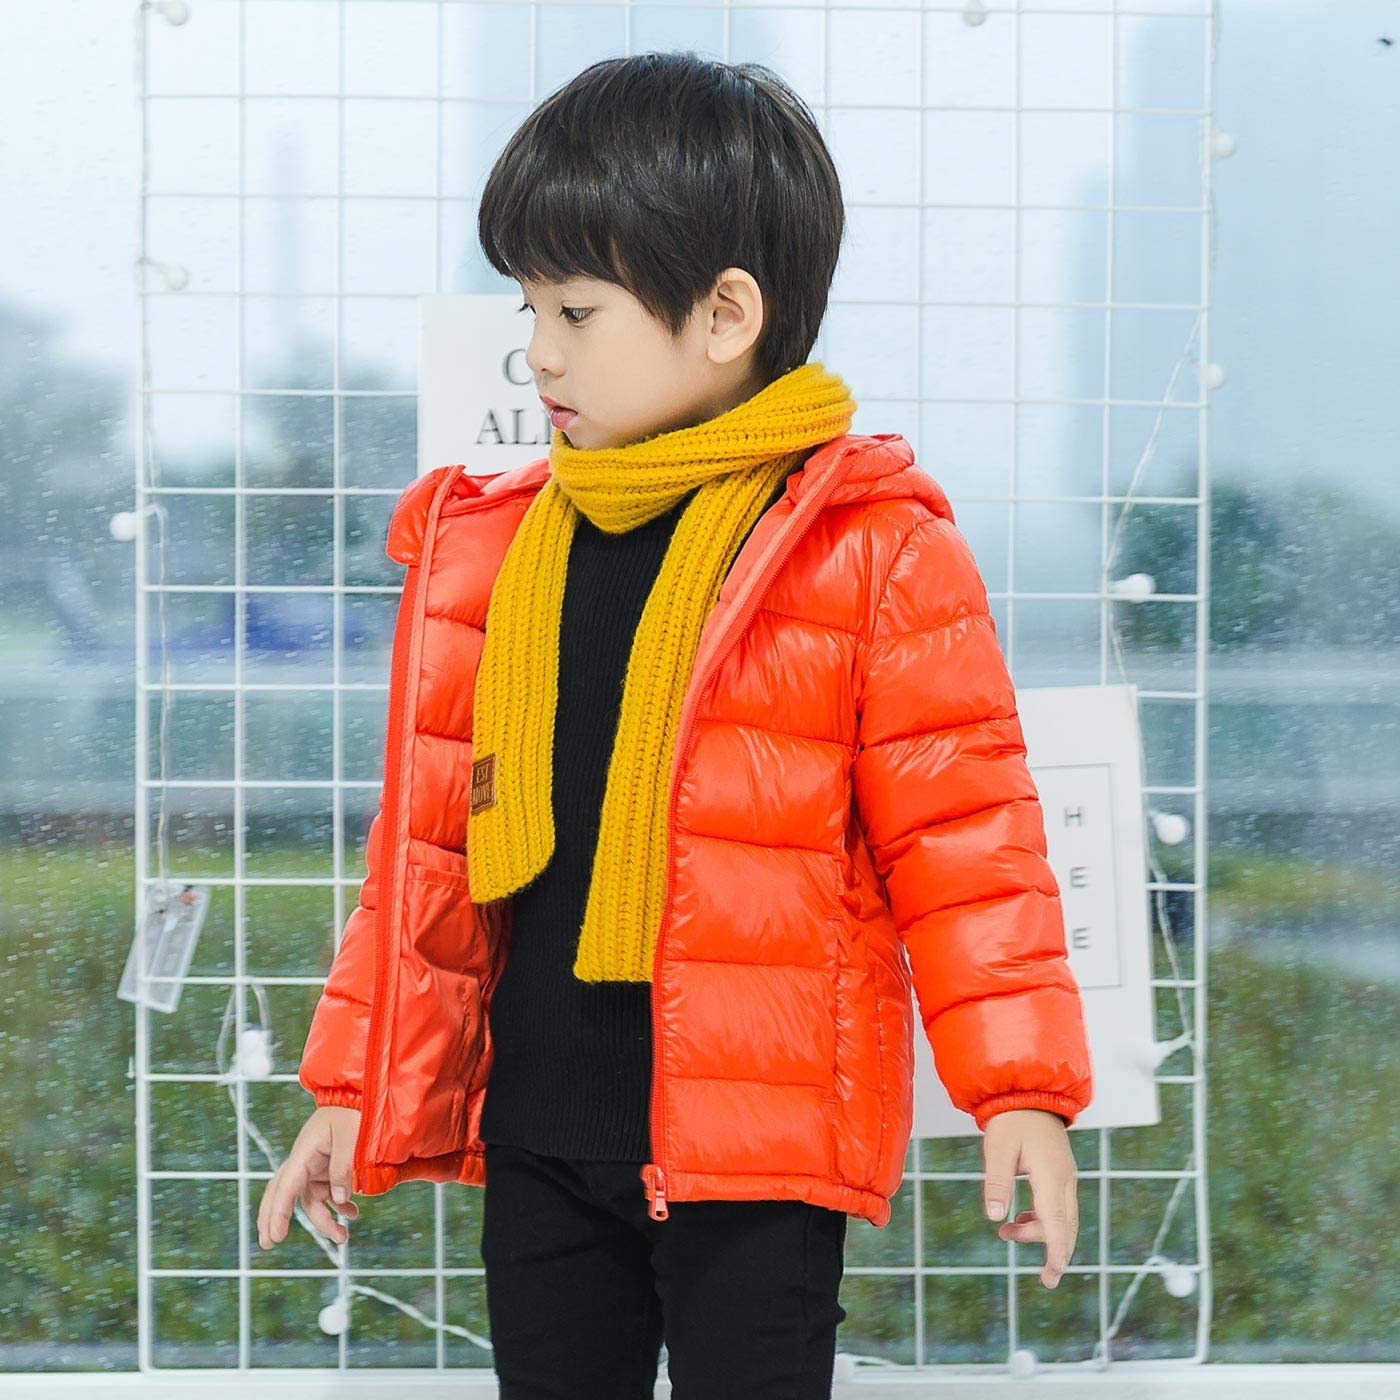 Baby Cute Christmas Puffer Coat Winter Warm Zipper Outerwear Windproof Down Jacket with Bear Hood for 1-5 Years